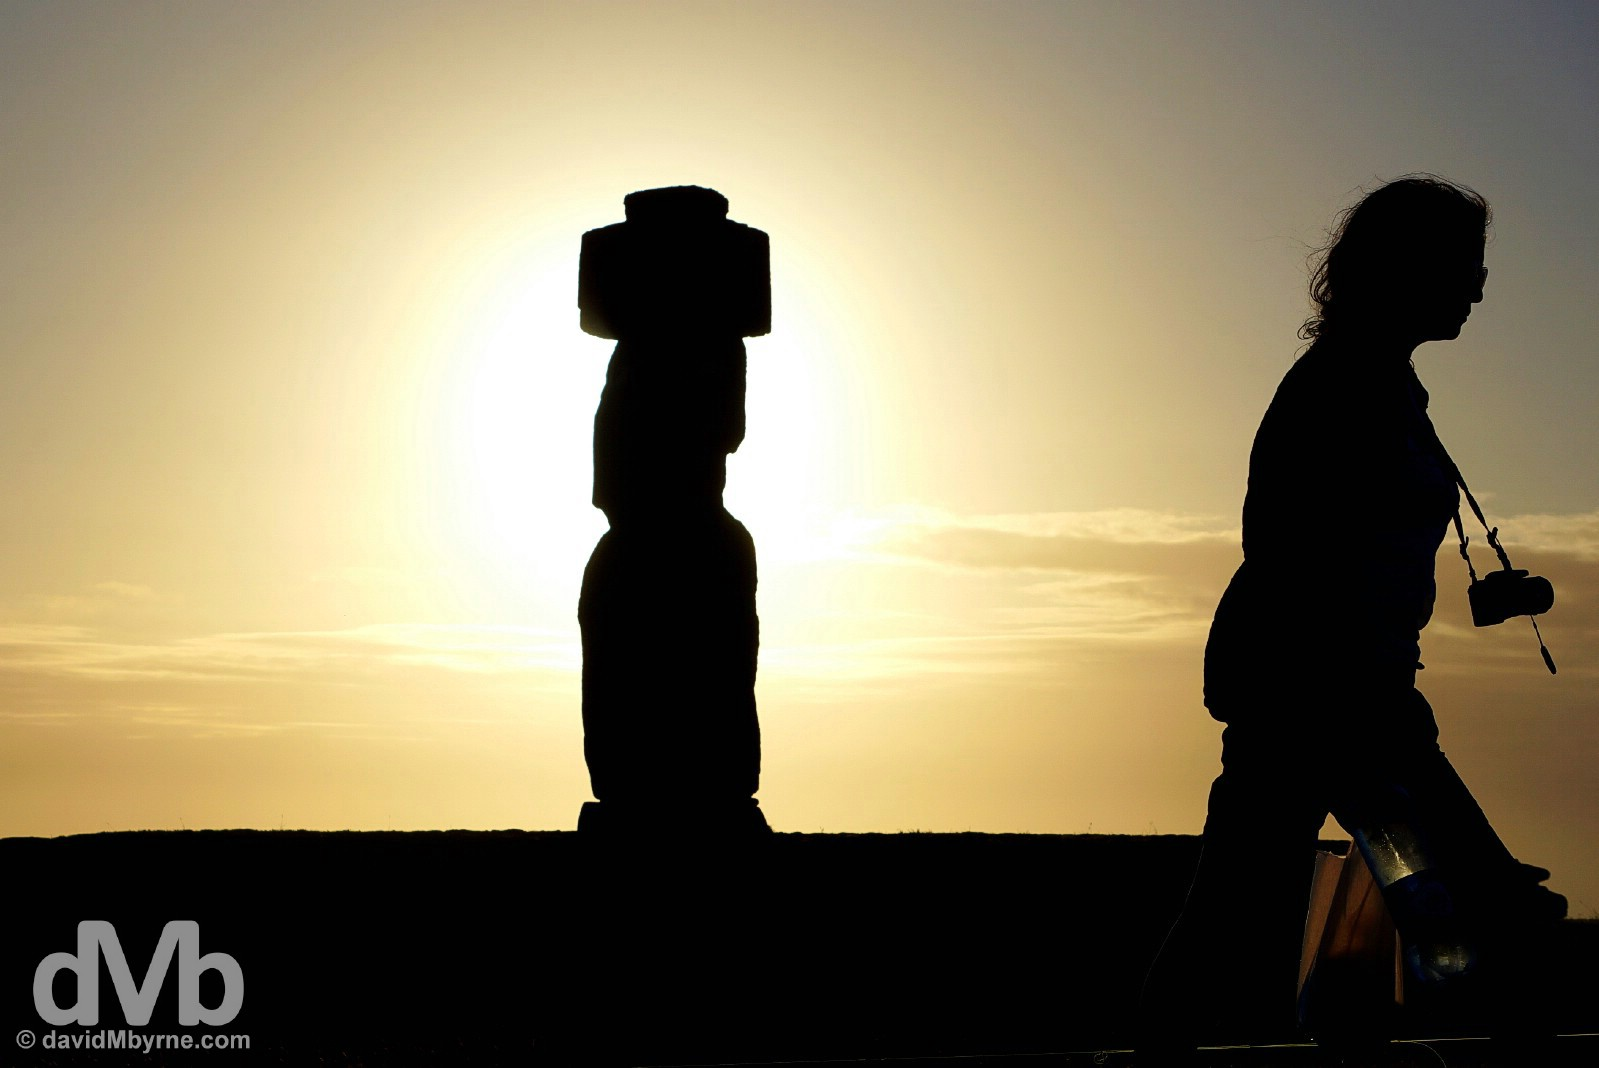 Sunset silhouettes at Ahu Ko Te Riku, Tahai, Easter Island, Chile. September 28, 2015.